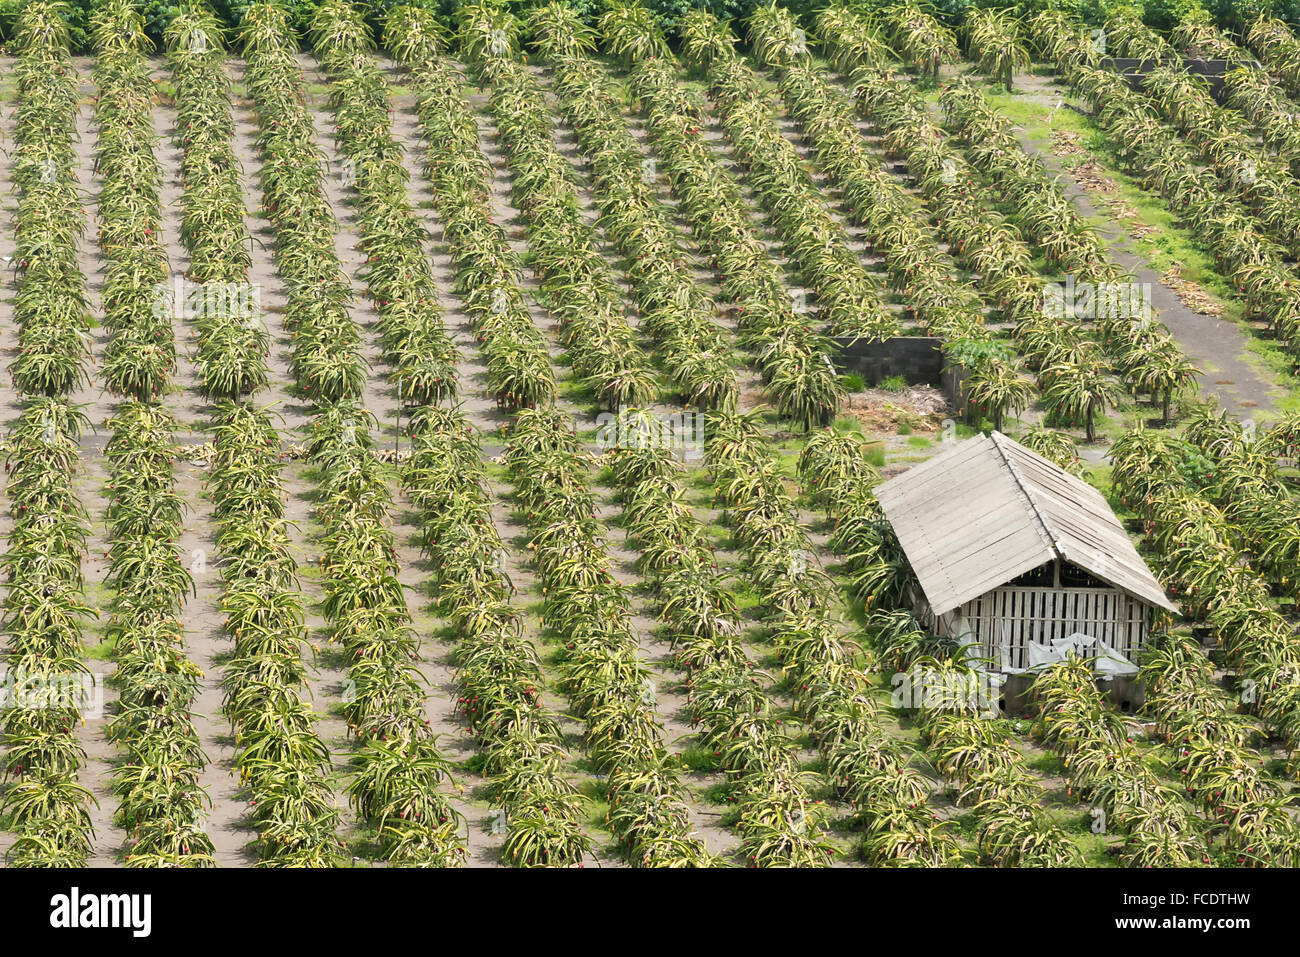 Plantation of red dragon fruit (Hylocereus costaricensis) in Indonesia - Stock Image